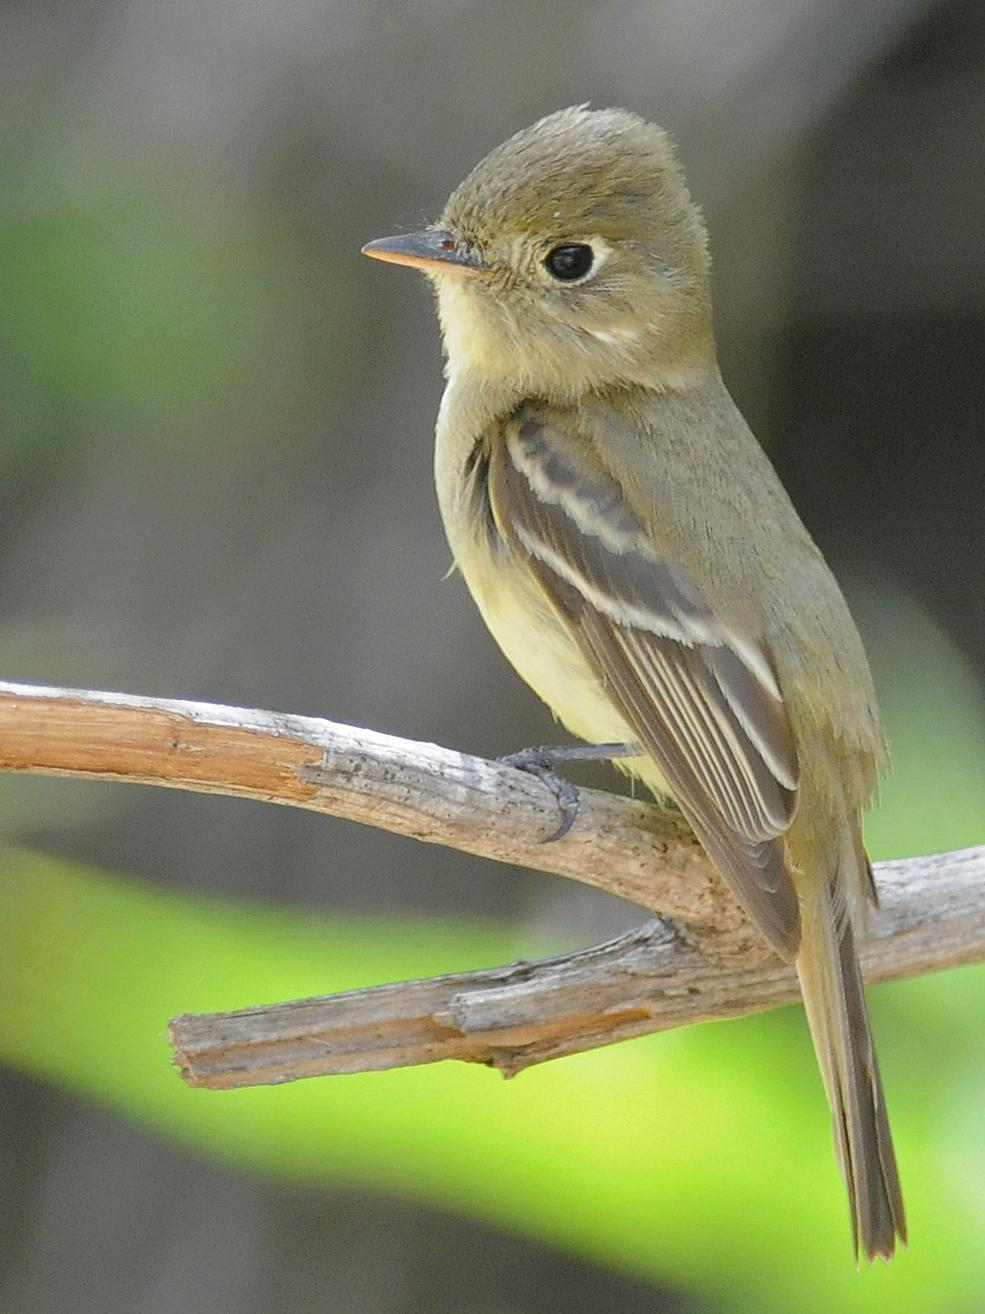 Pacific-slope Flycatcher Photo by Steven Mlodinow